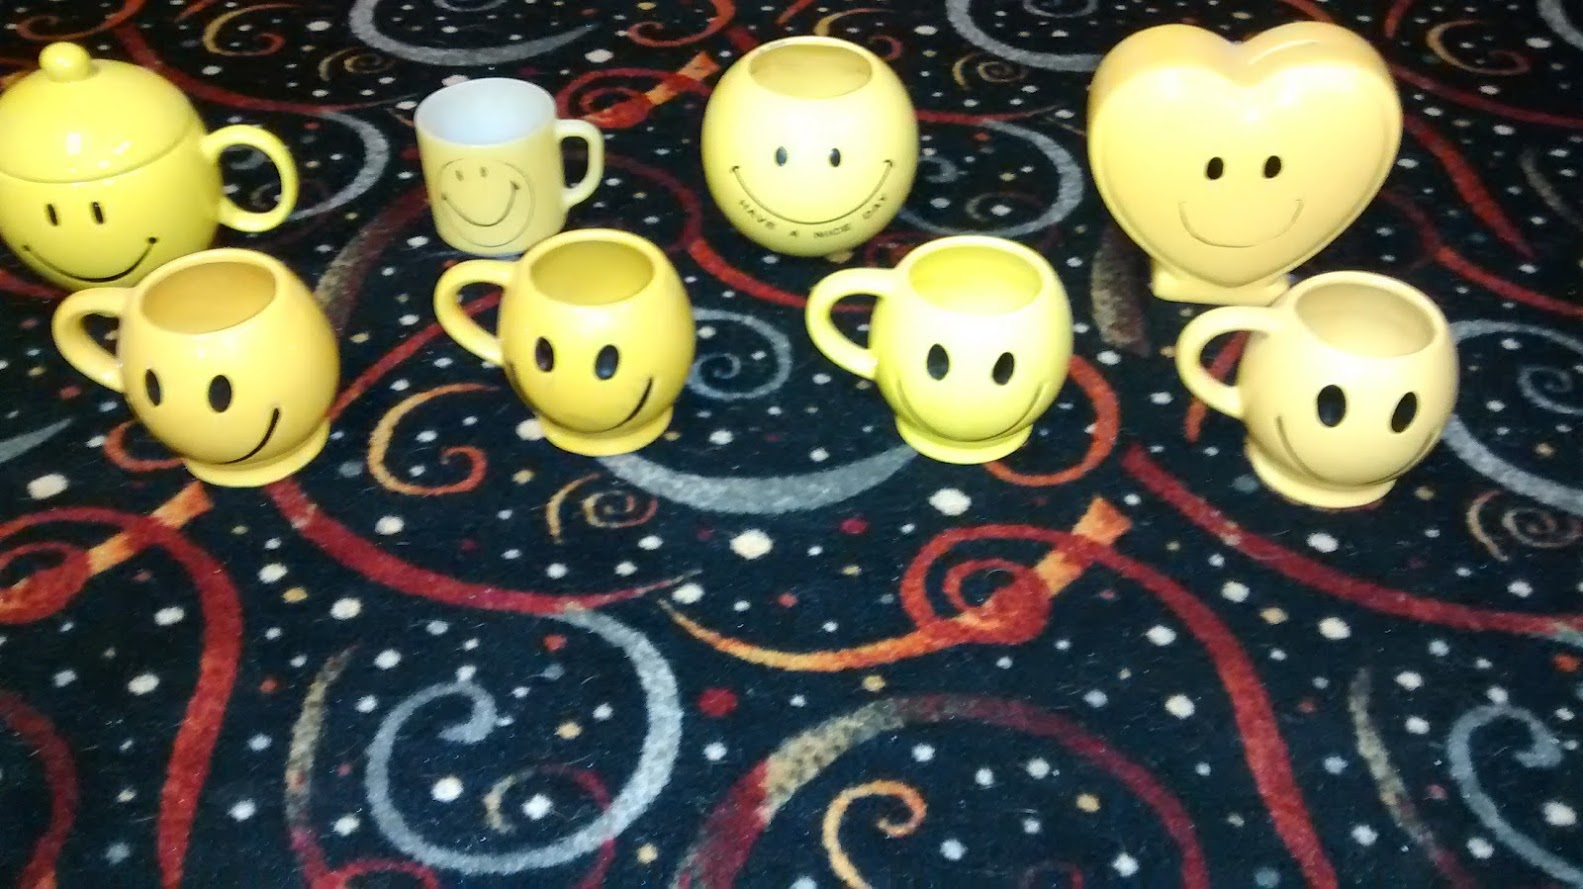 Vintage McCoy Smiley face mugs + others